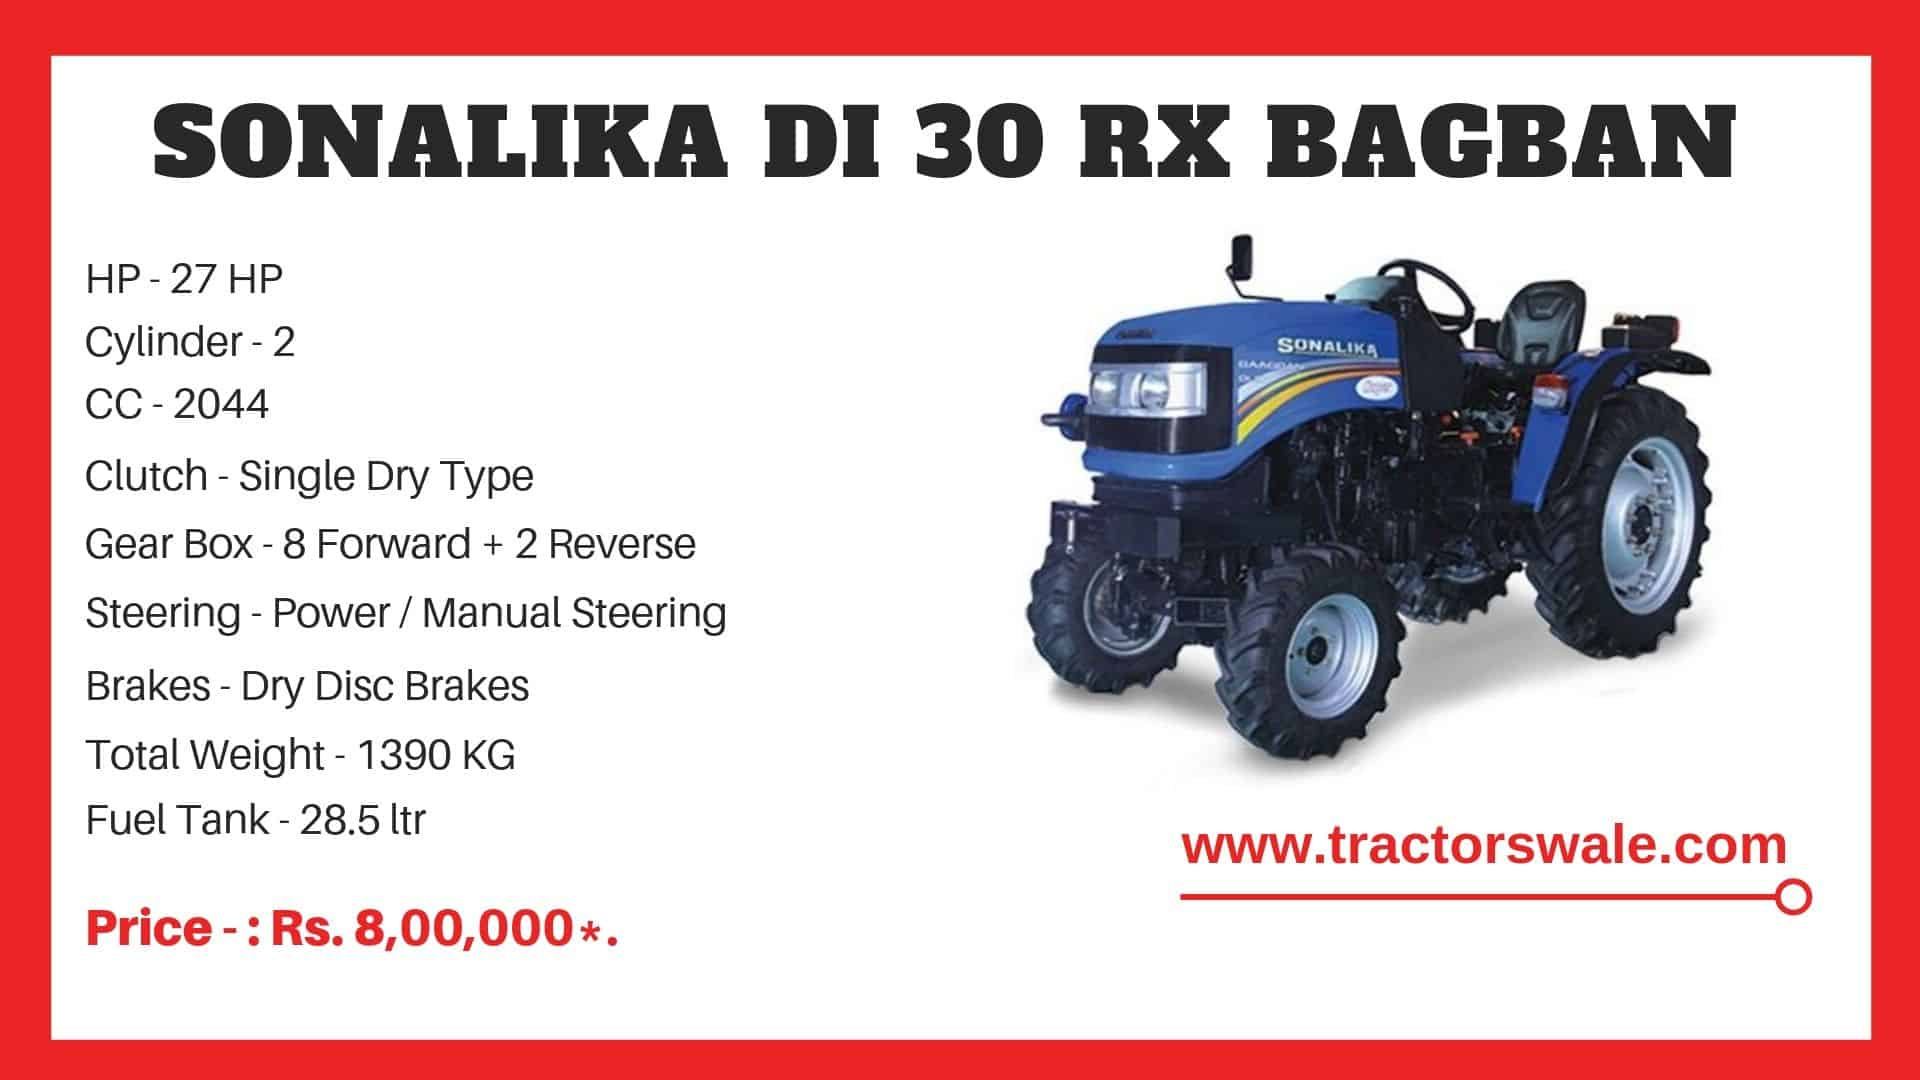 Specifications Of Sonalika DI 30 RX BAGBAN SUPER Tractor